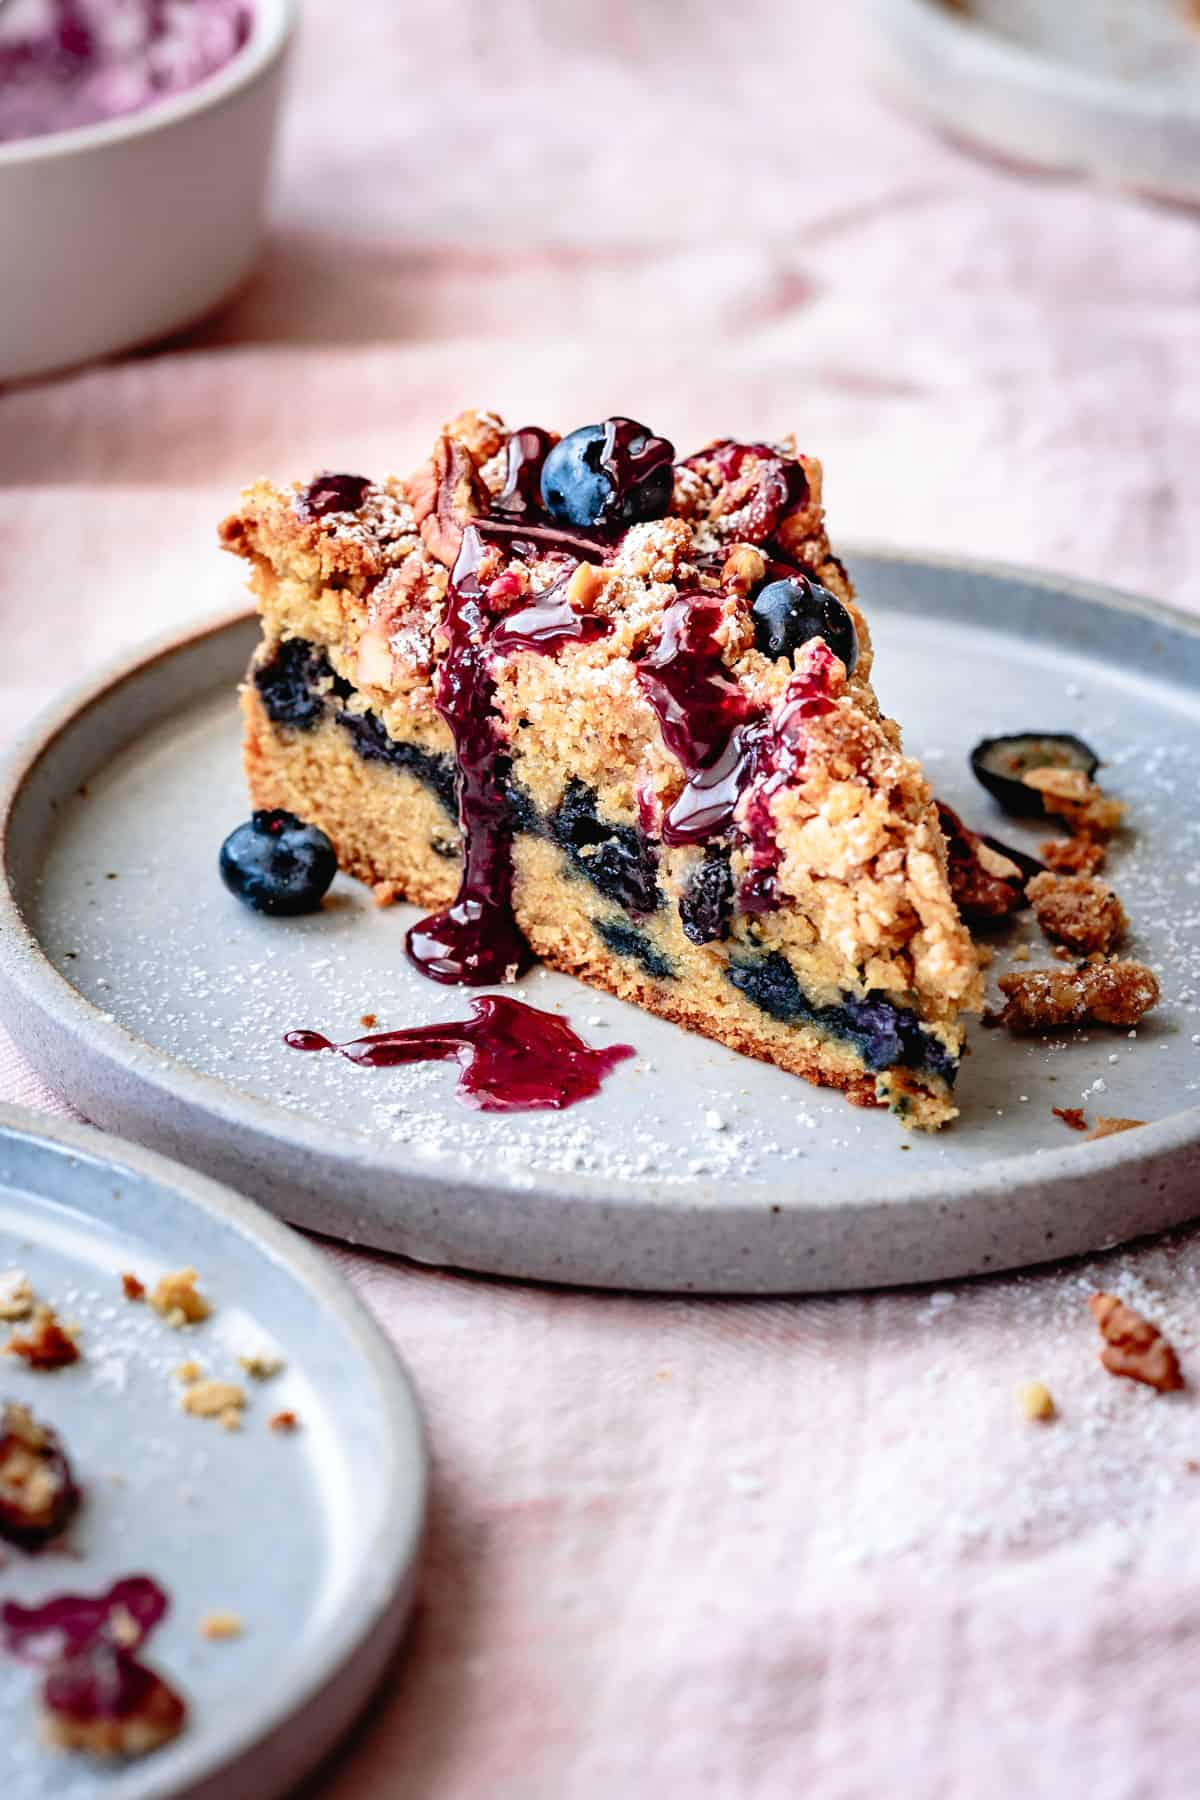 Gluten Free Blueberry Coffee Cake slice on a plate